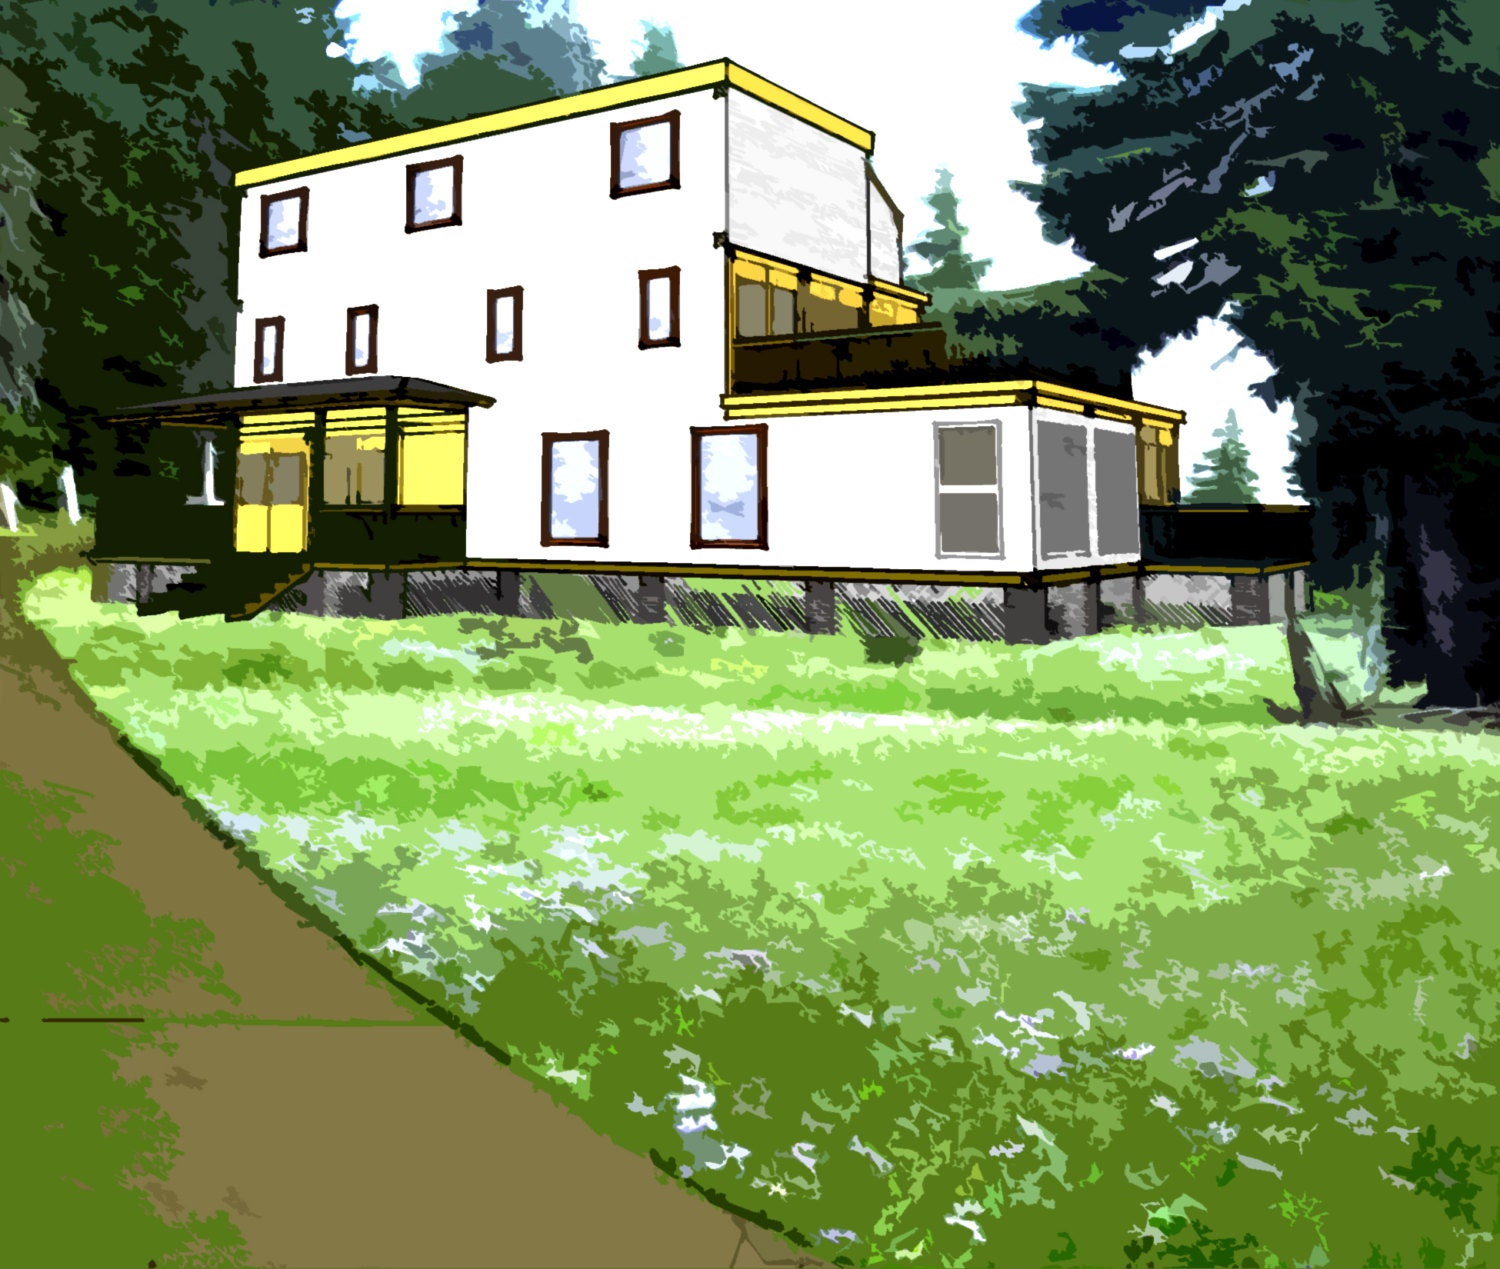 Modern Shipping Container House Plan Design: Shipping Container House Plans 4 Bed 4 1/2 Bath Schematic